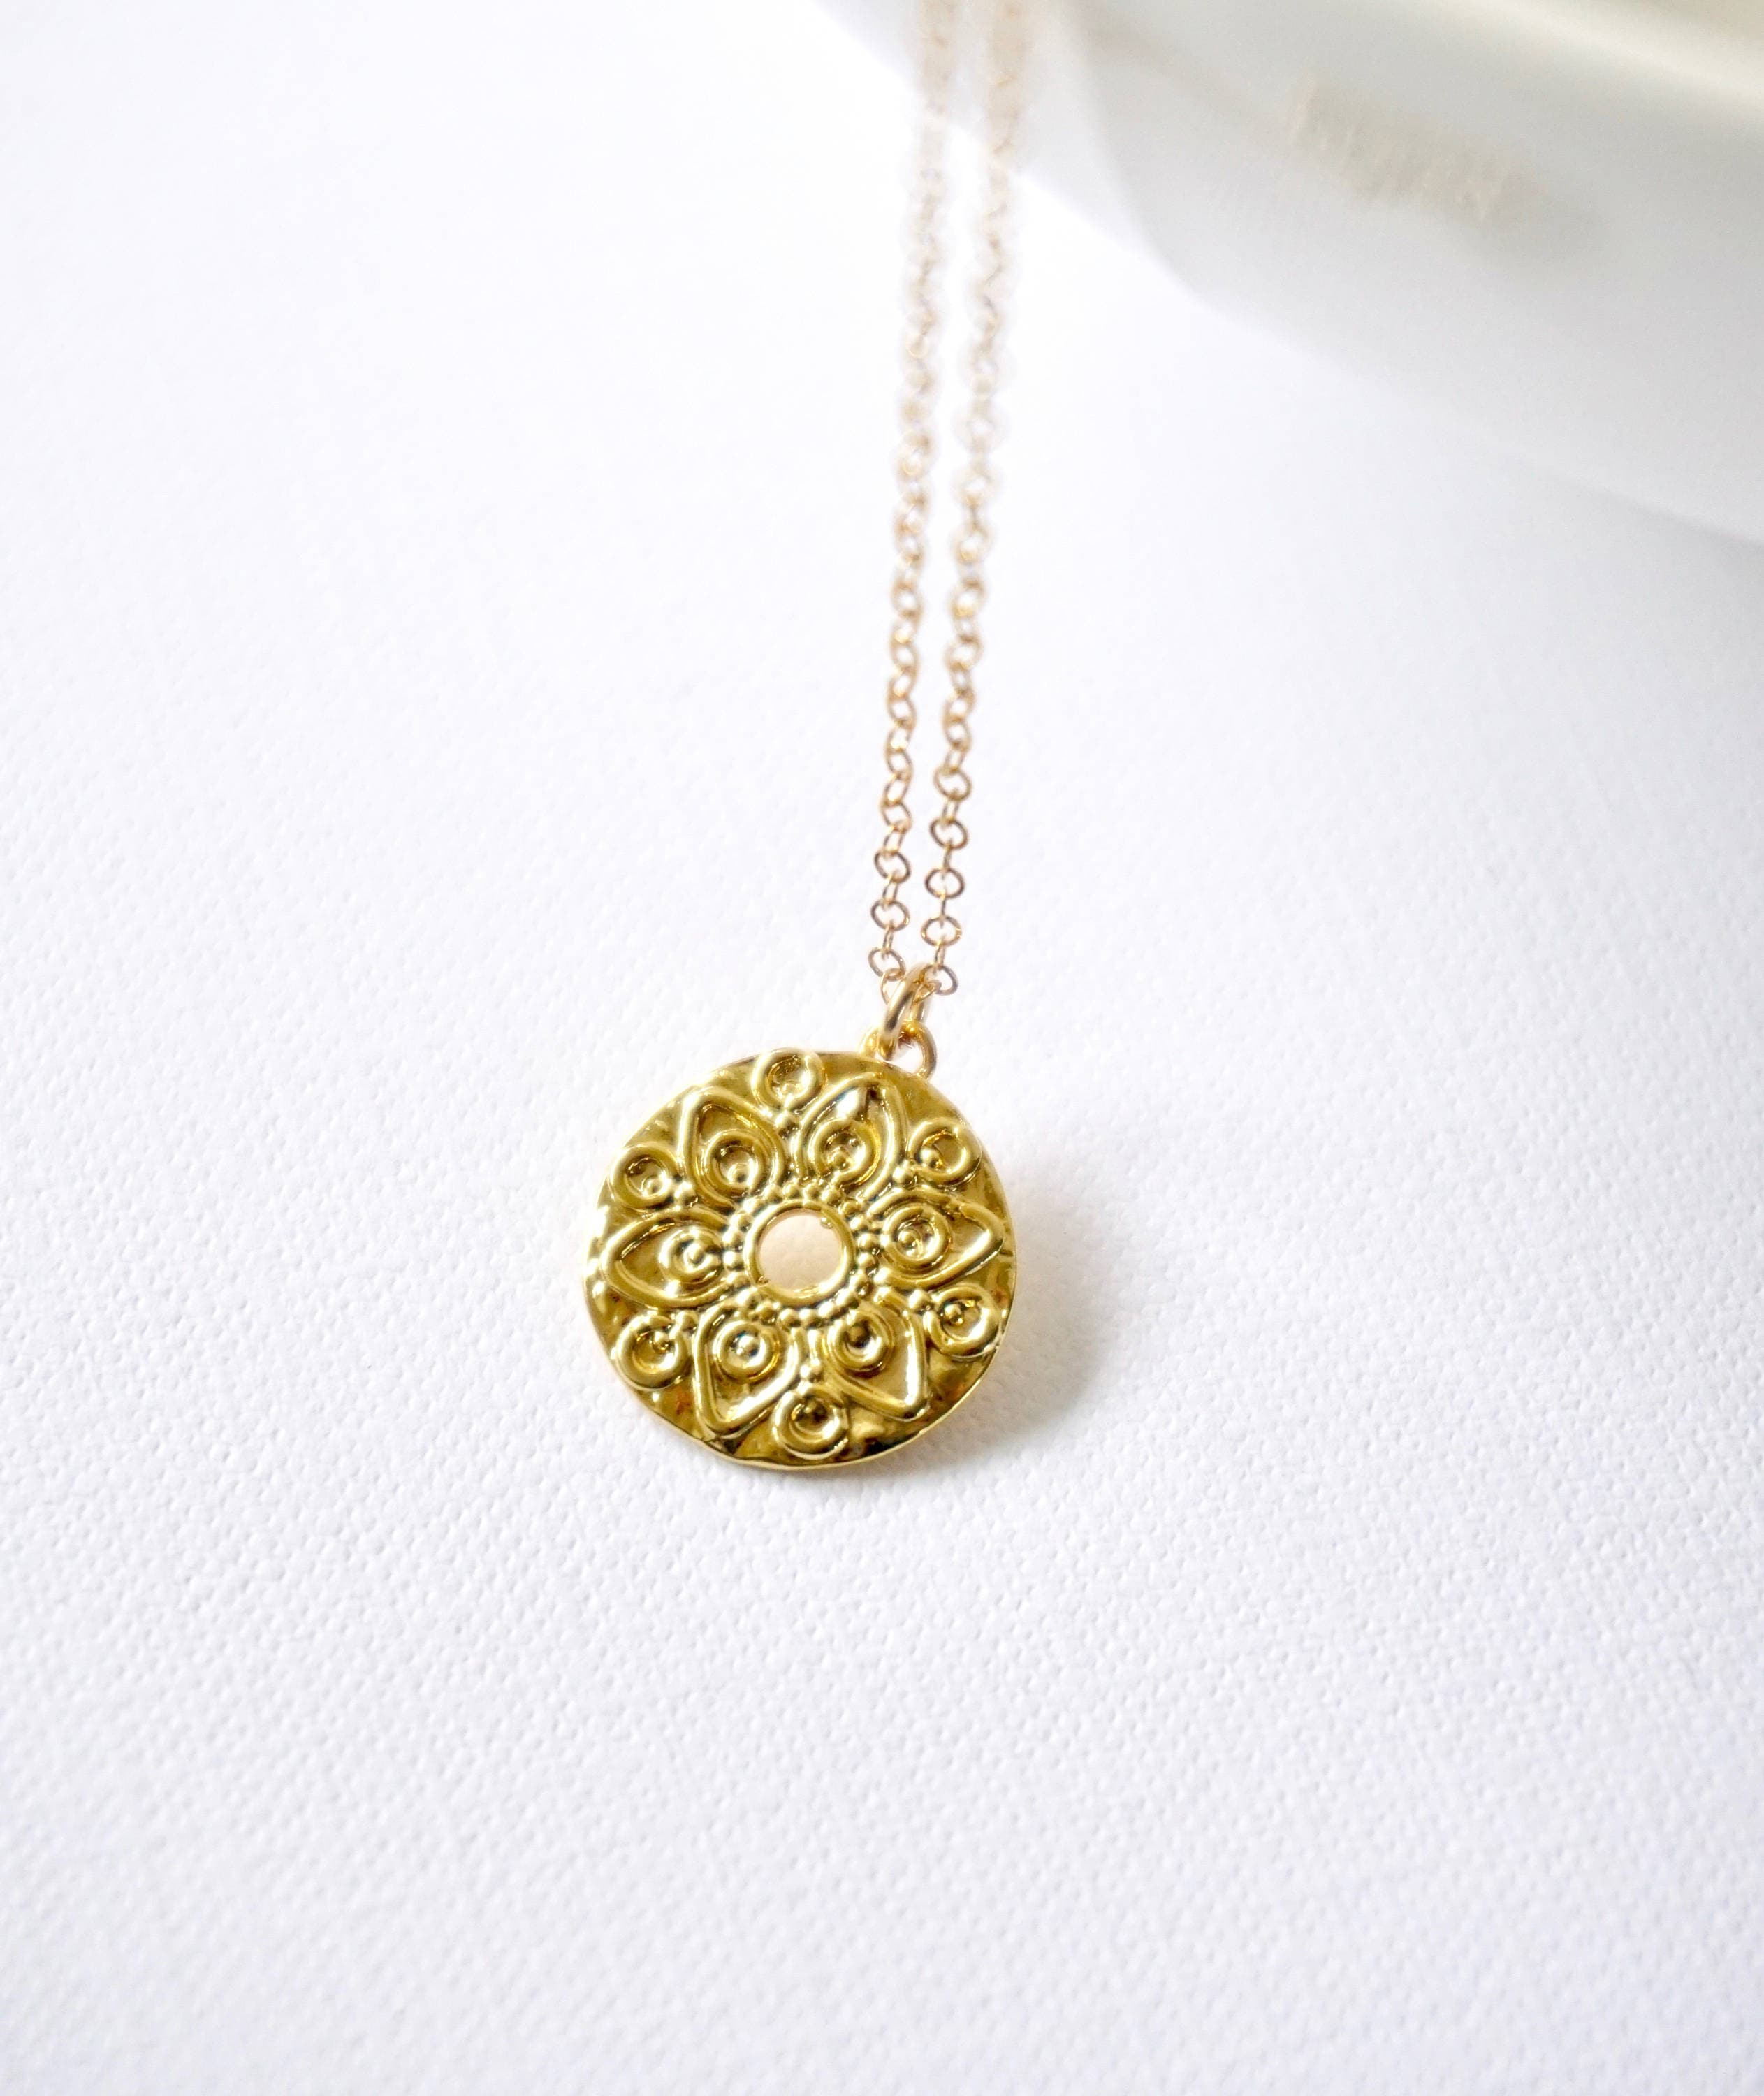 jewellery america medallion gram weight coin buy gold flower with modern product prize fine obverse karat crown